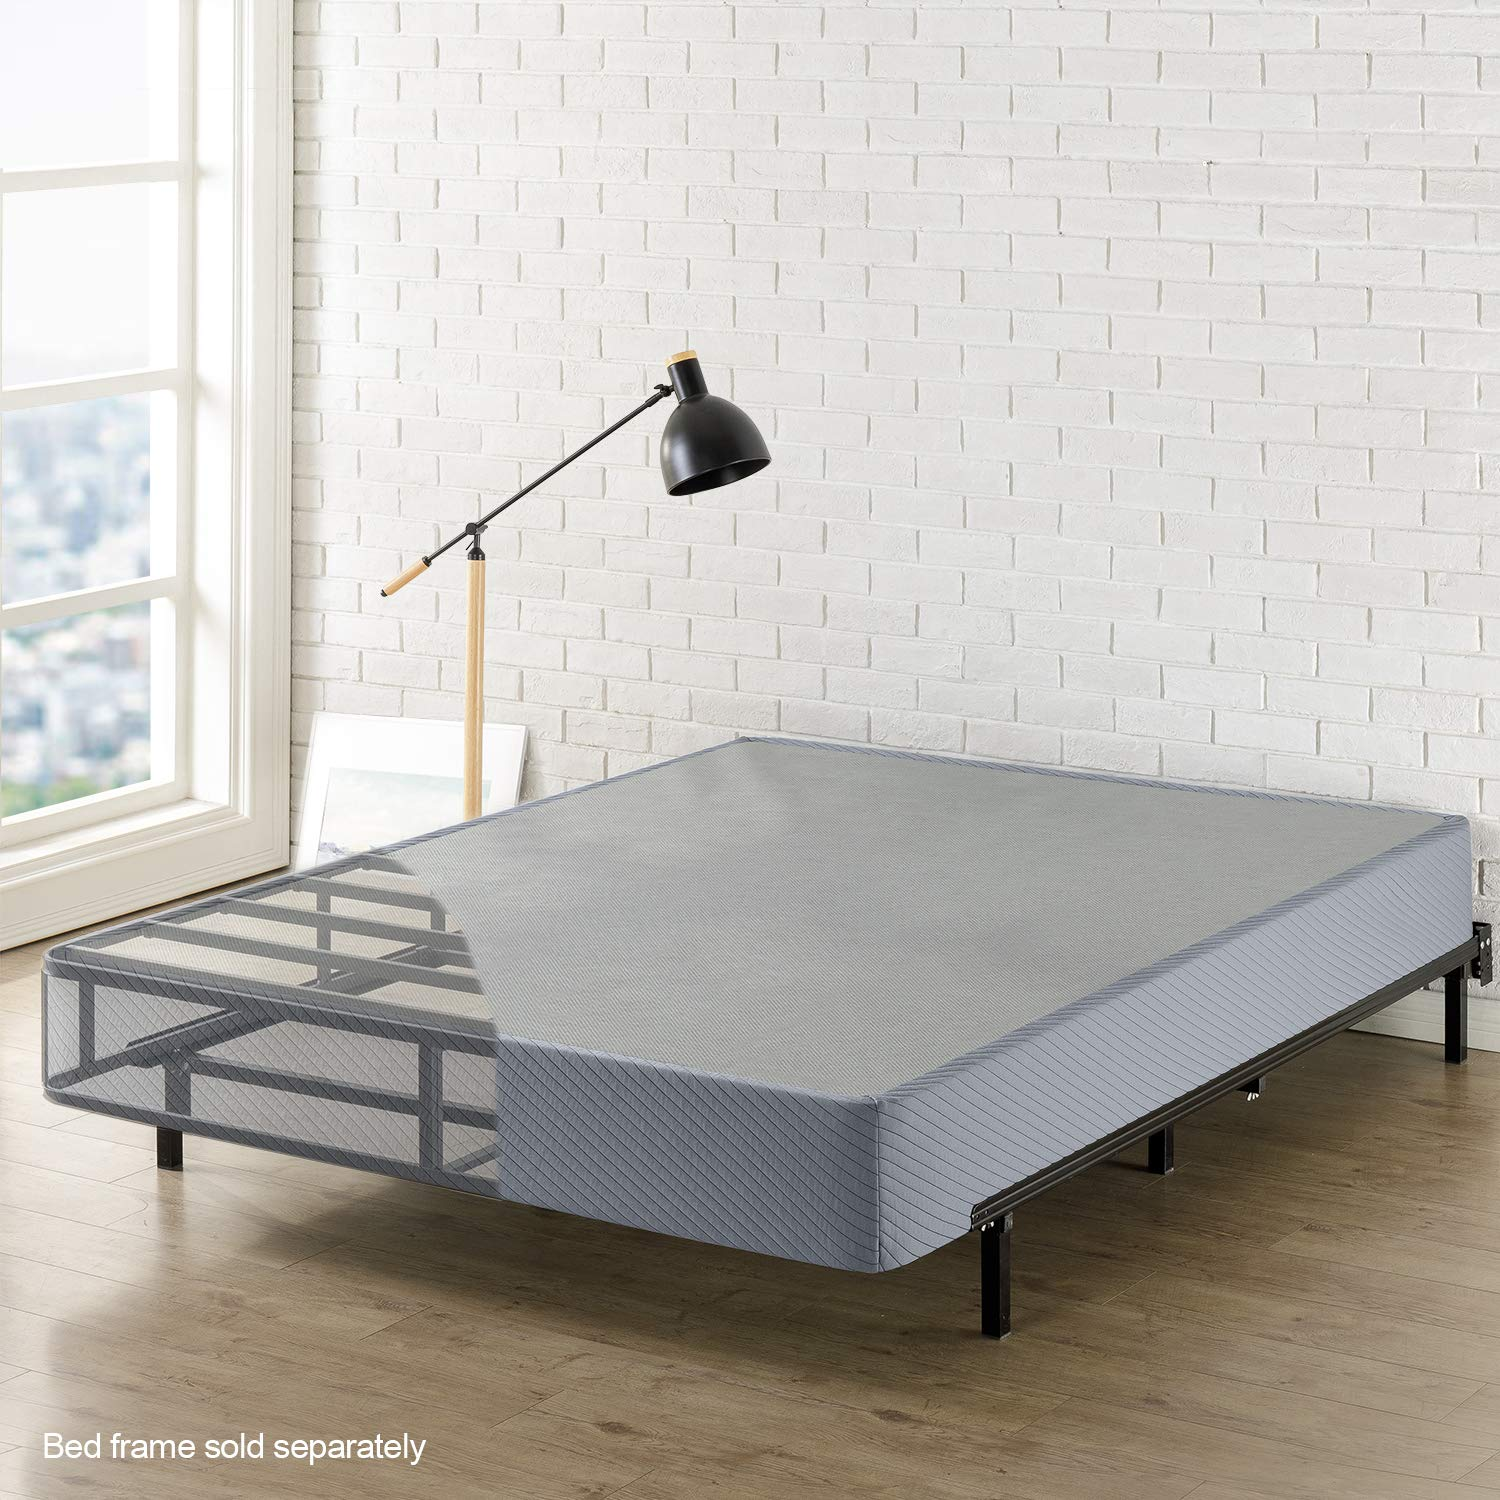 Best Price Mattress Queen Box Spring 9'' High Profile with with Heavy Duty Steel Slat Mattress Foundation Fits Standard Bed Frame, Gray by Best Price Mattress